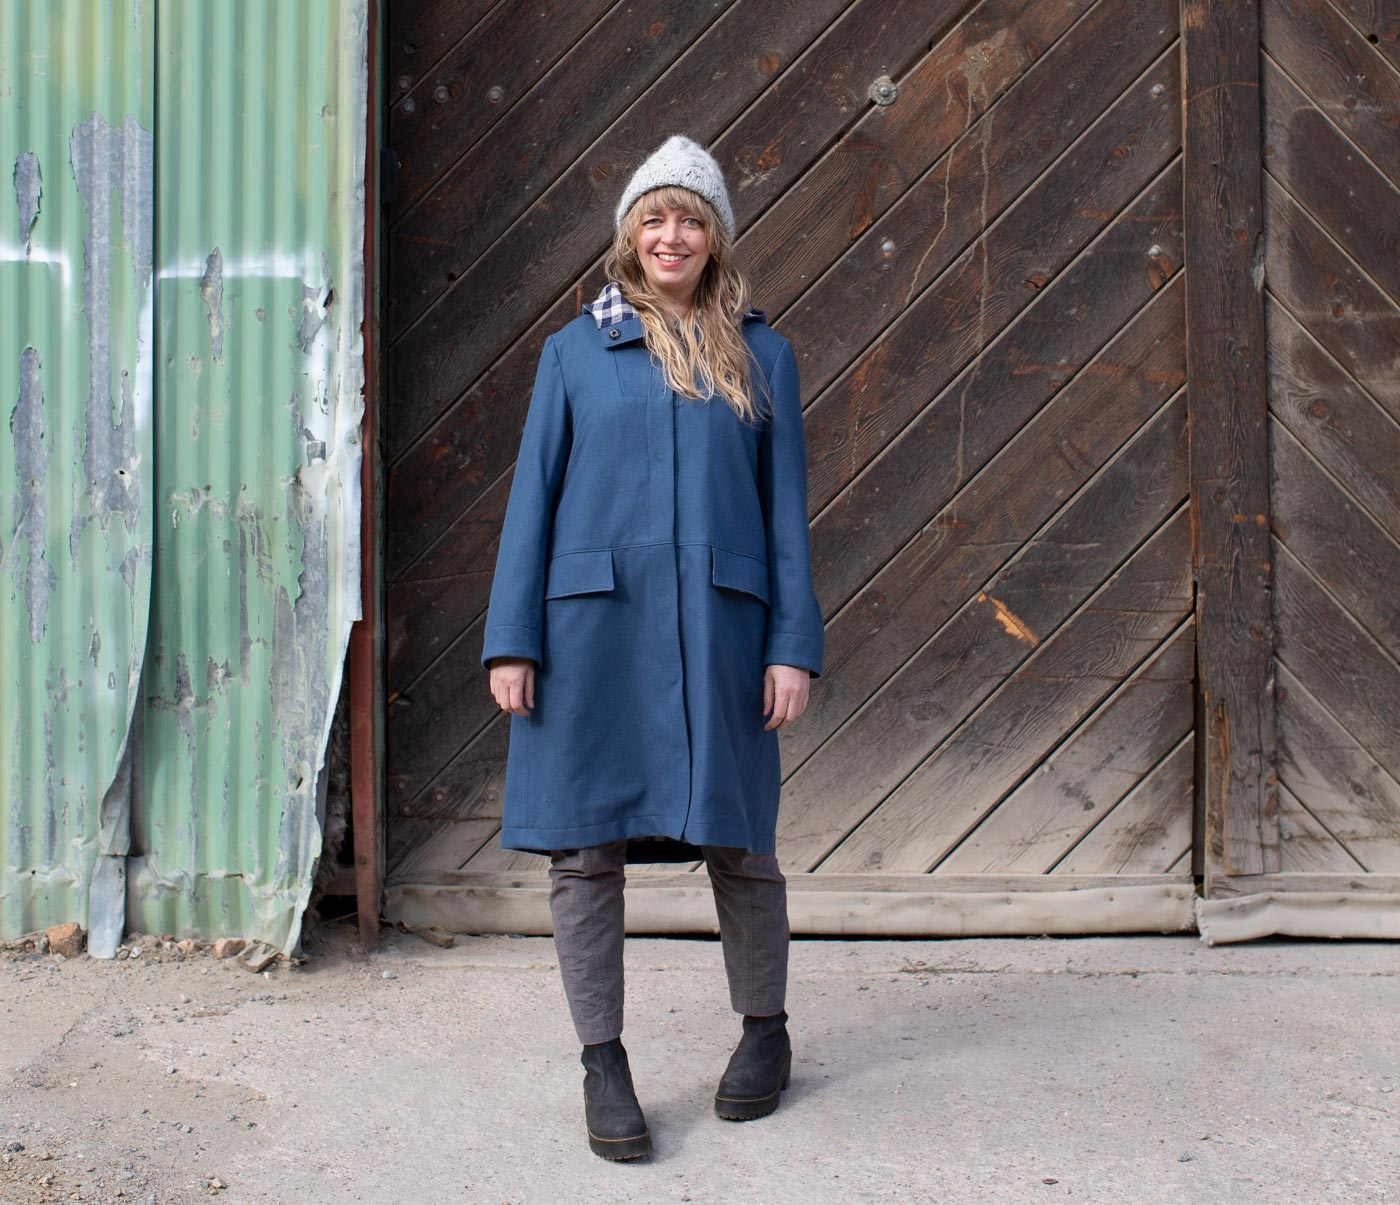 Amber stands in her blue wool parka smiling.